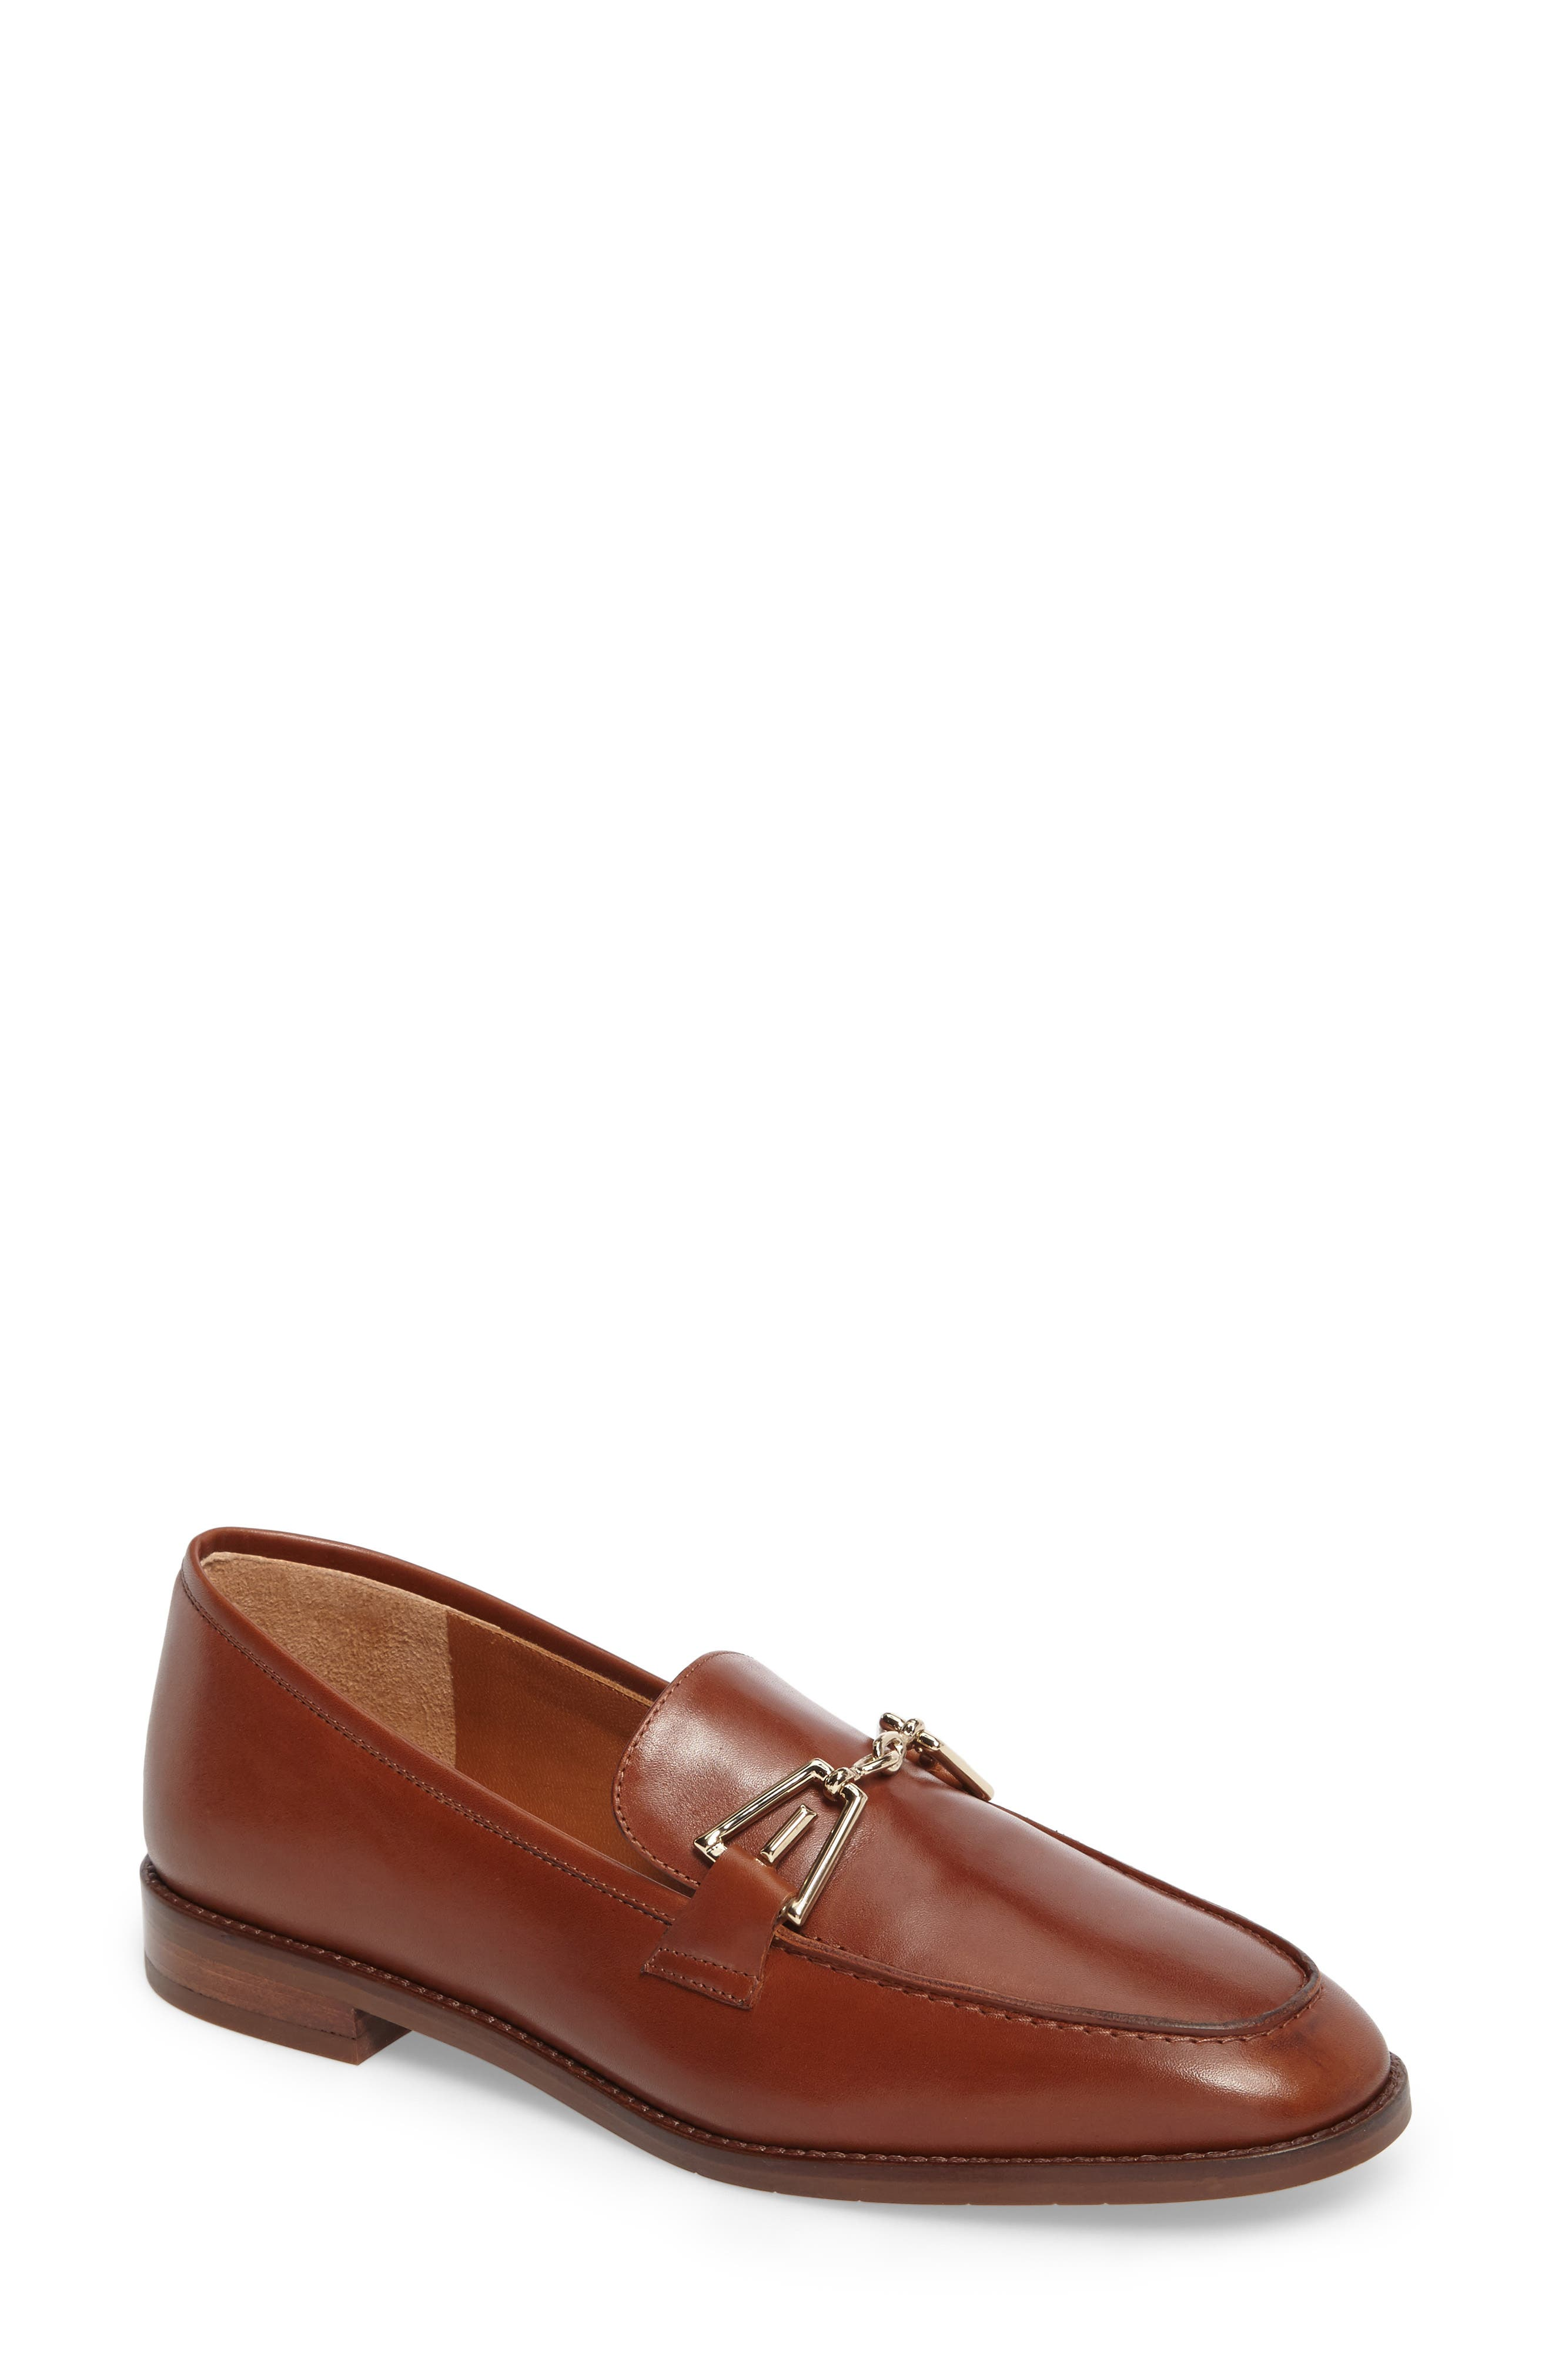 Aquatalia Teodora Weatherproof Loafer (Women)